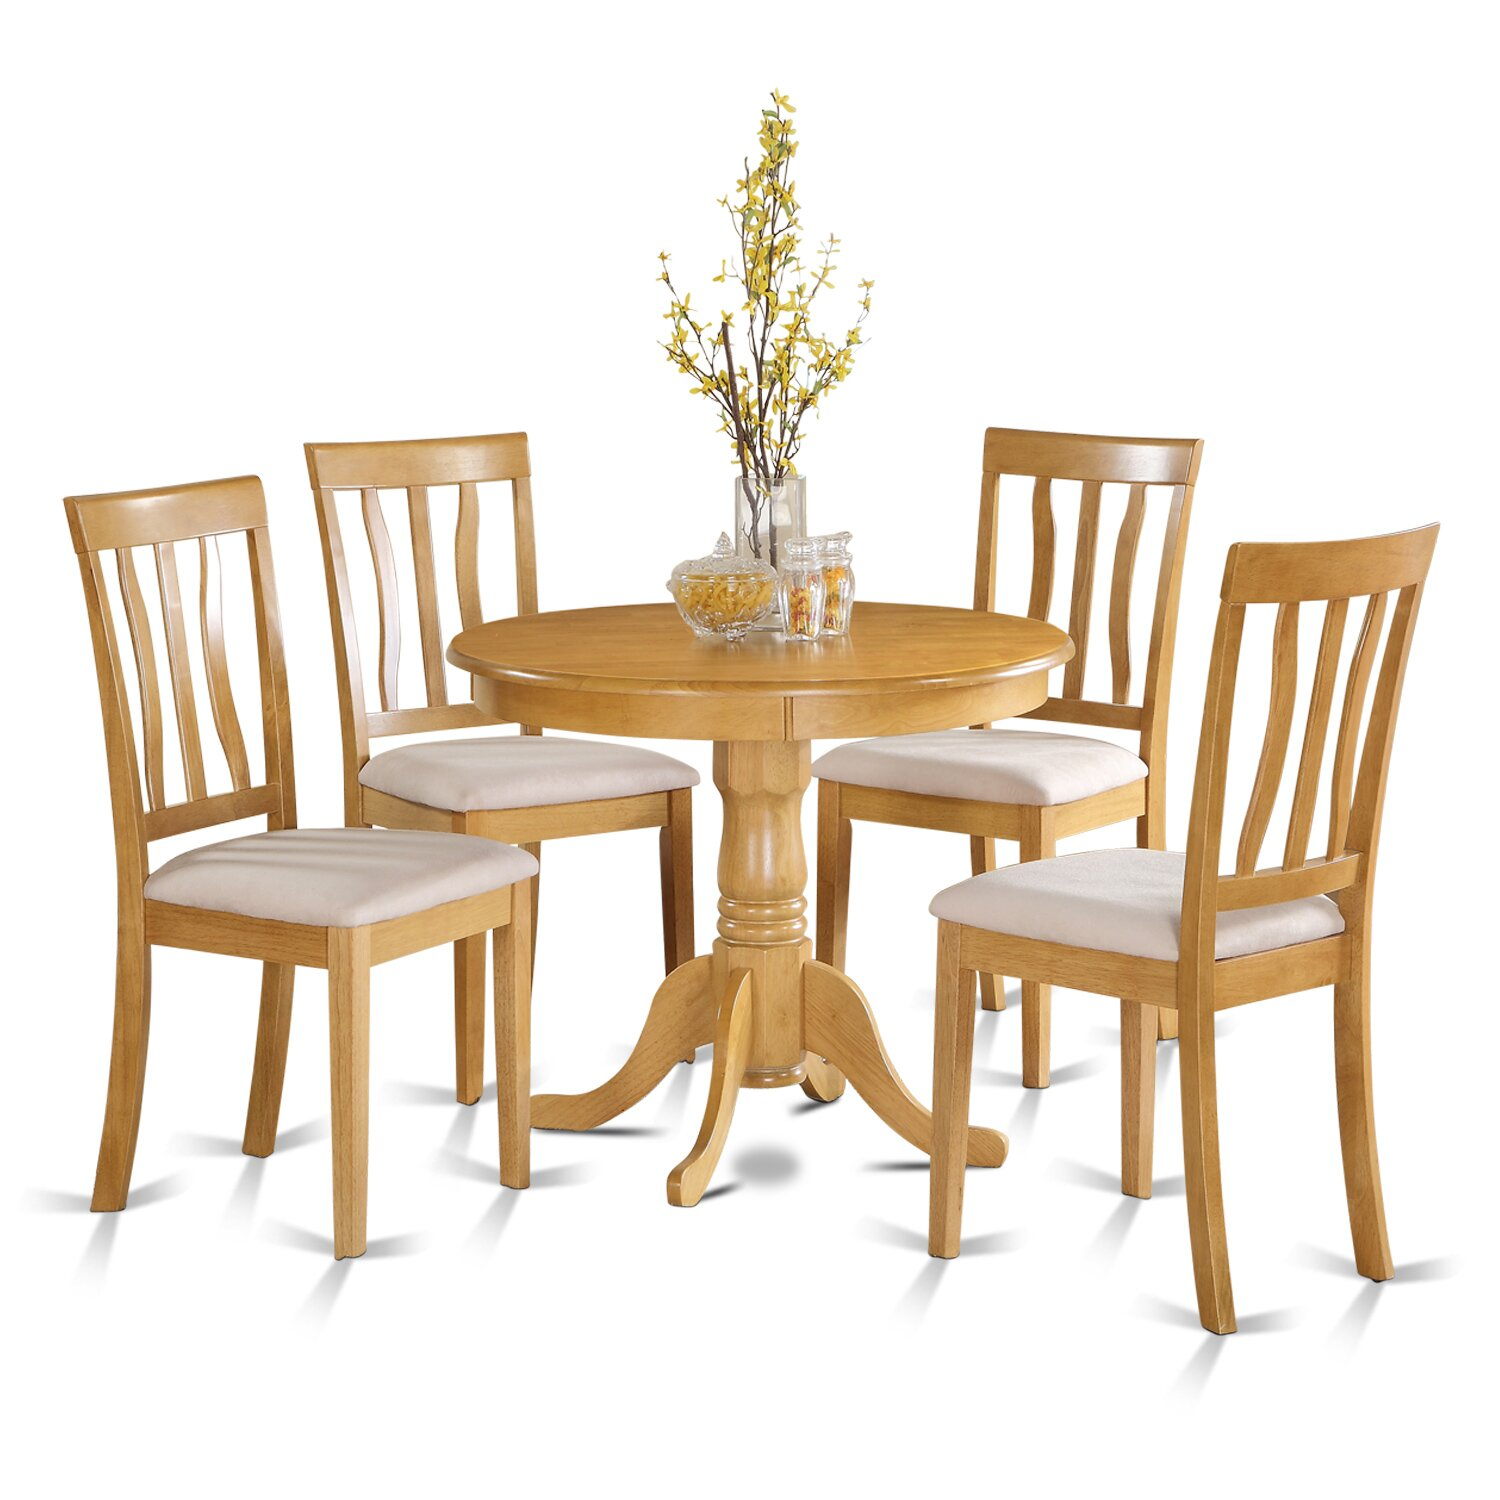 Wooden importers 5 piece dining set reviews wayfair for Kitchen dining sets